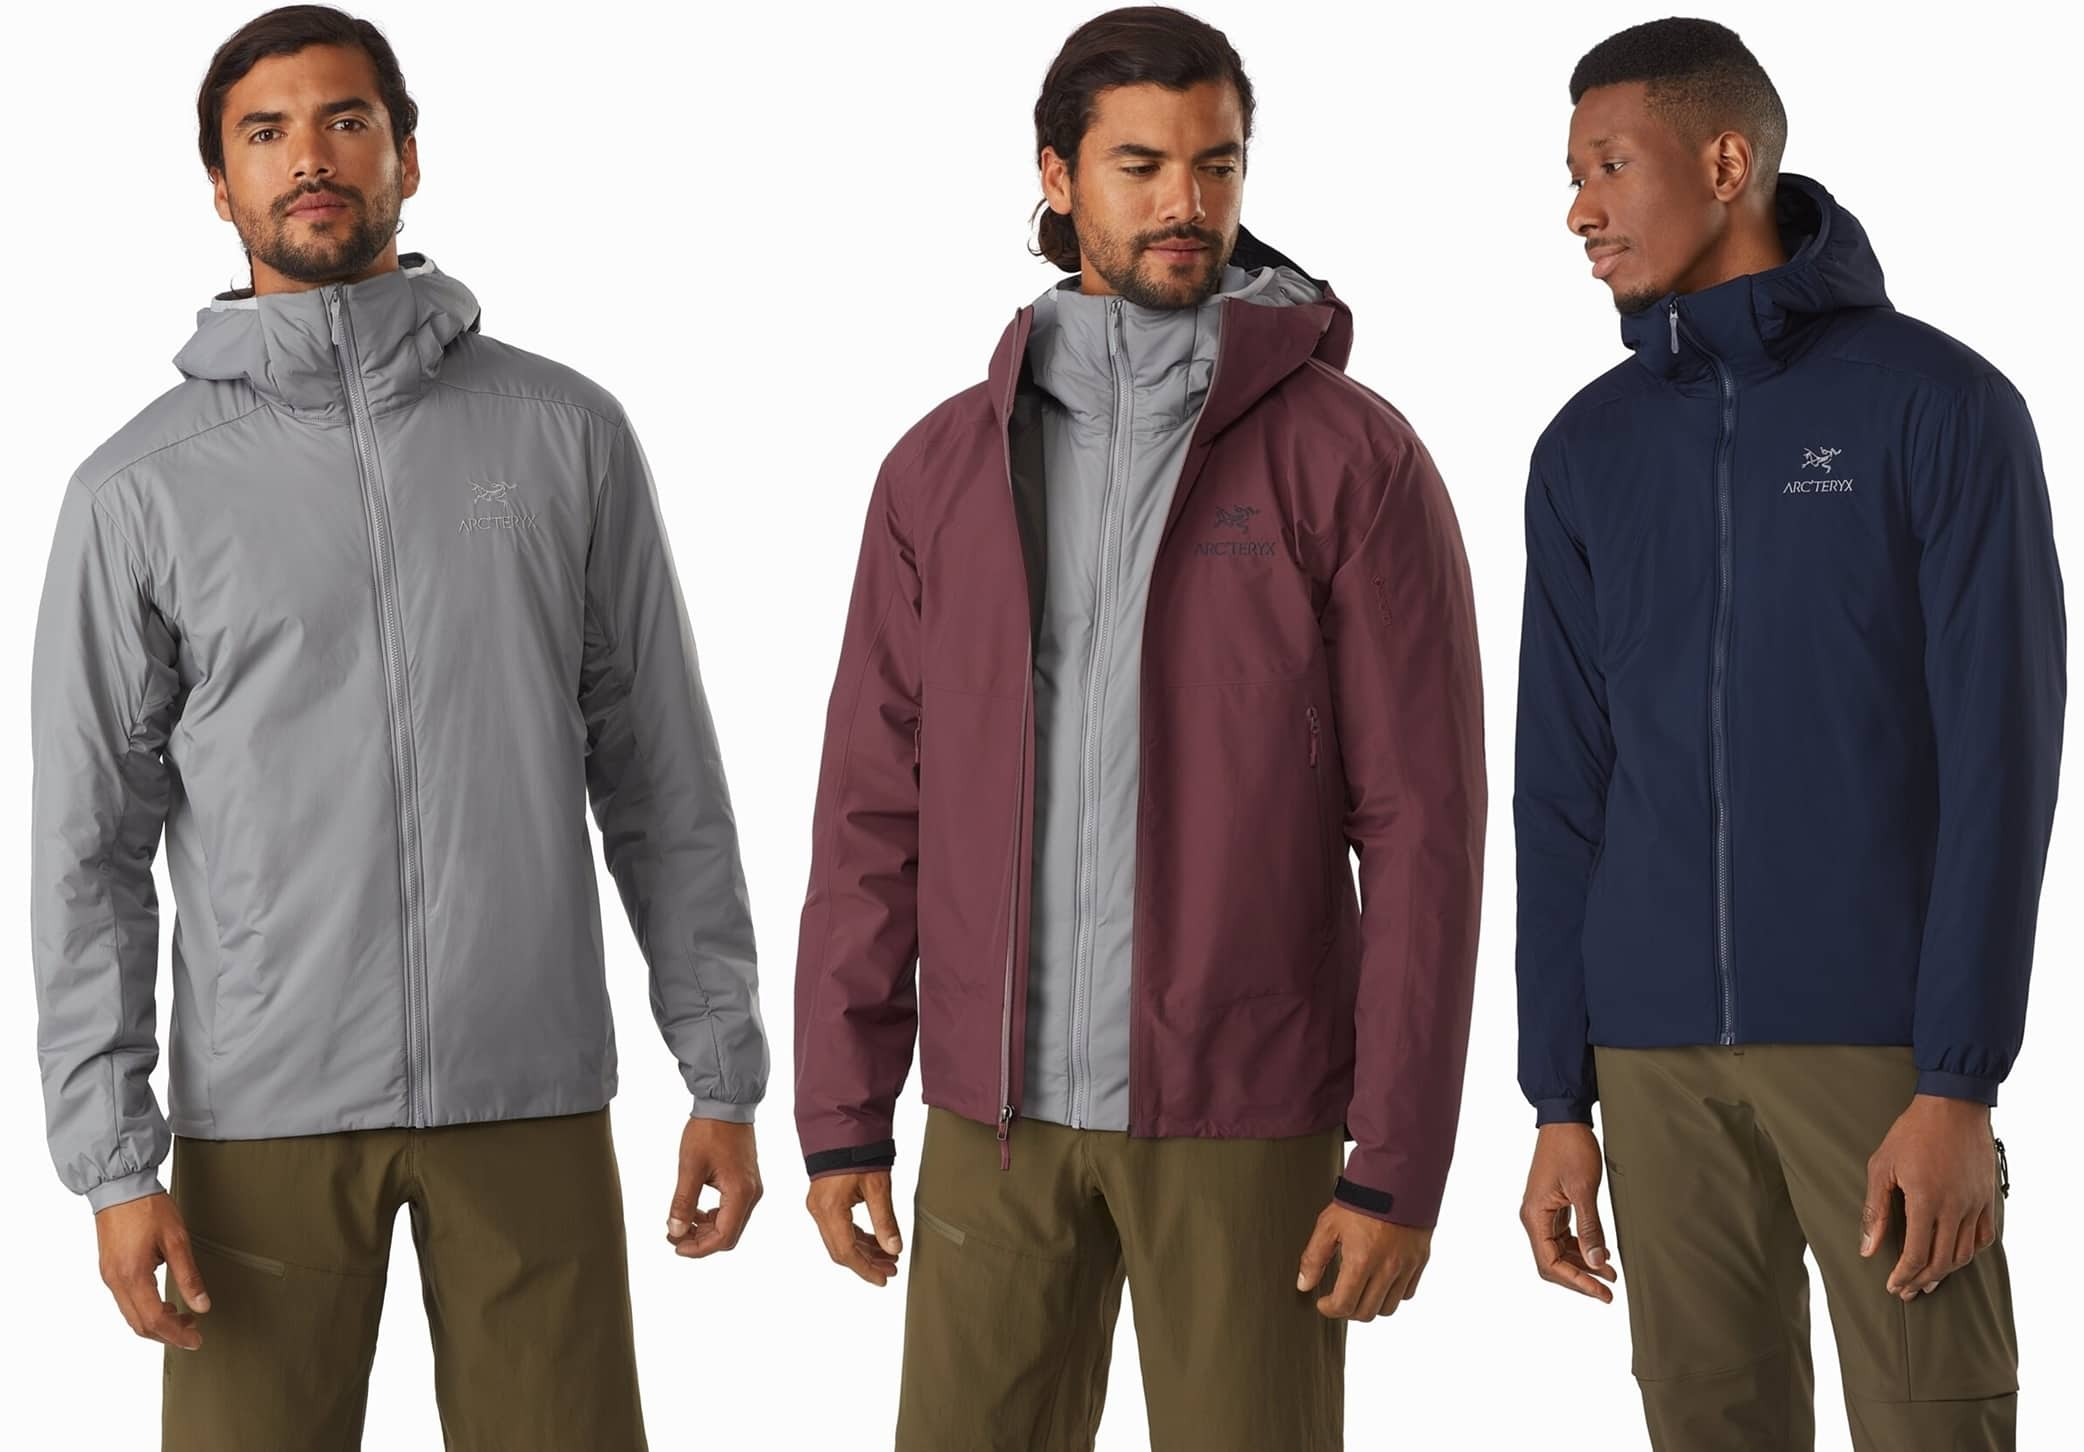 Light, versatile synthetically insulated hoody works as a midlayer and standalone